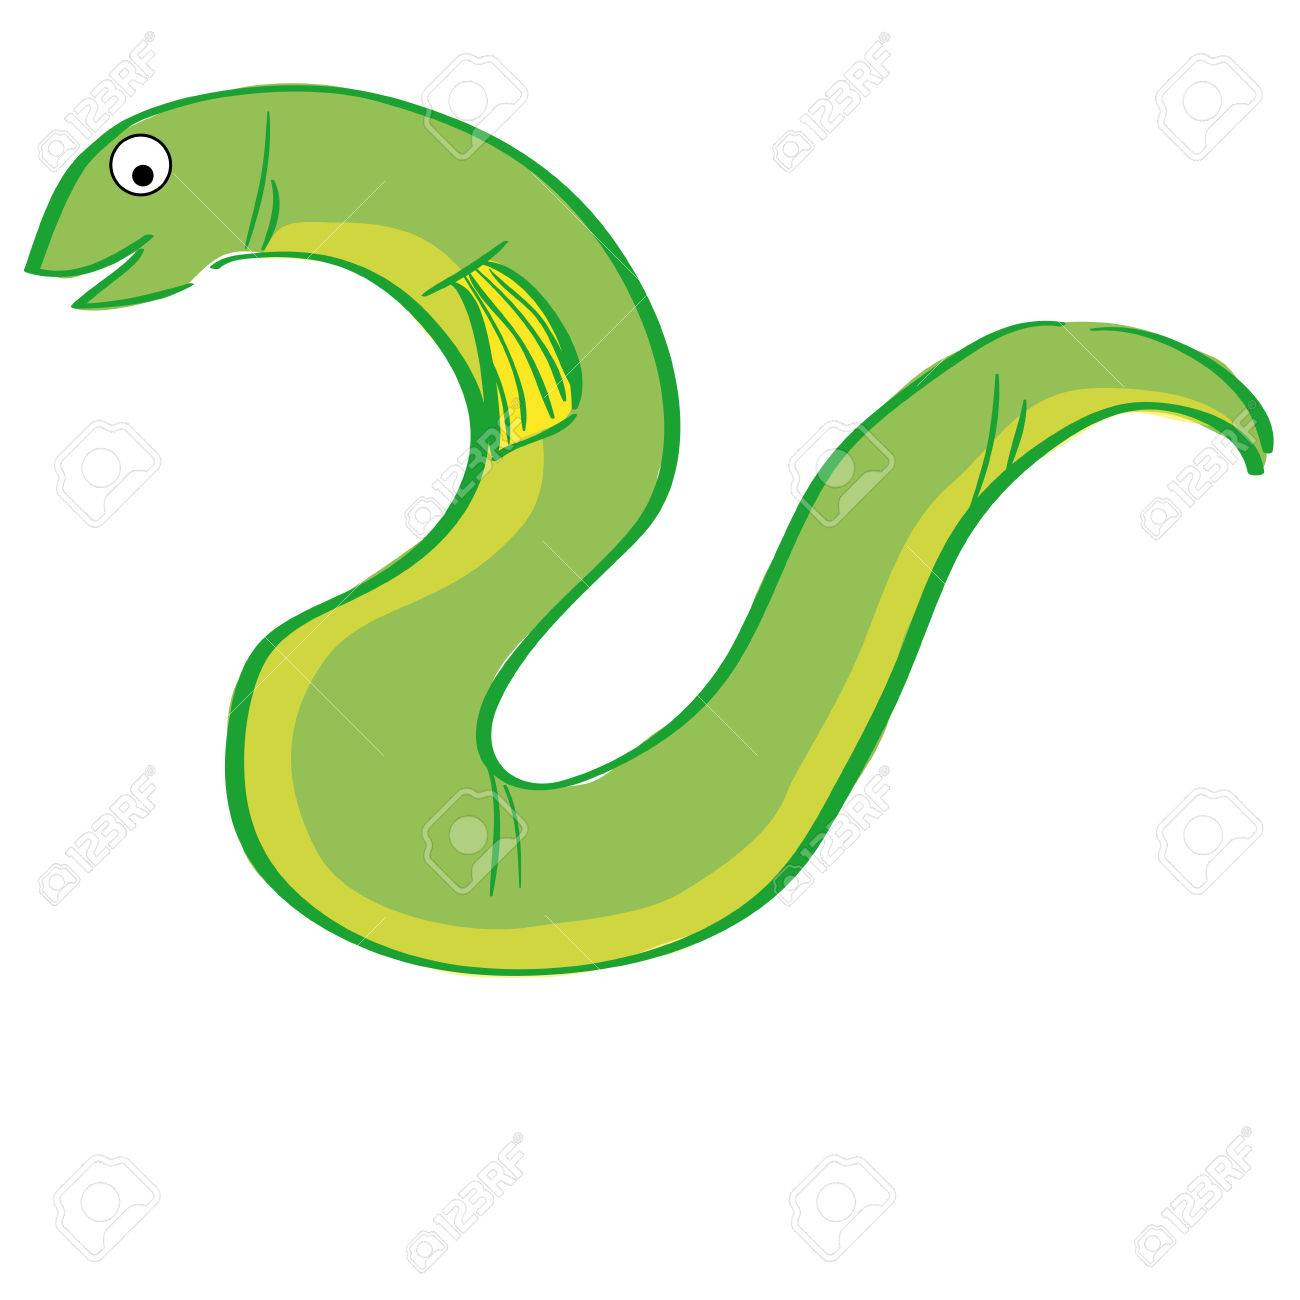 hight resolution of a green eel on a white background stock vector 31547458